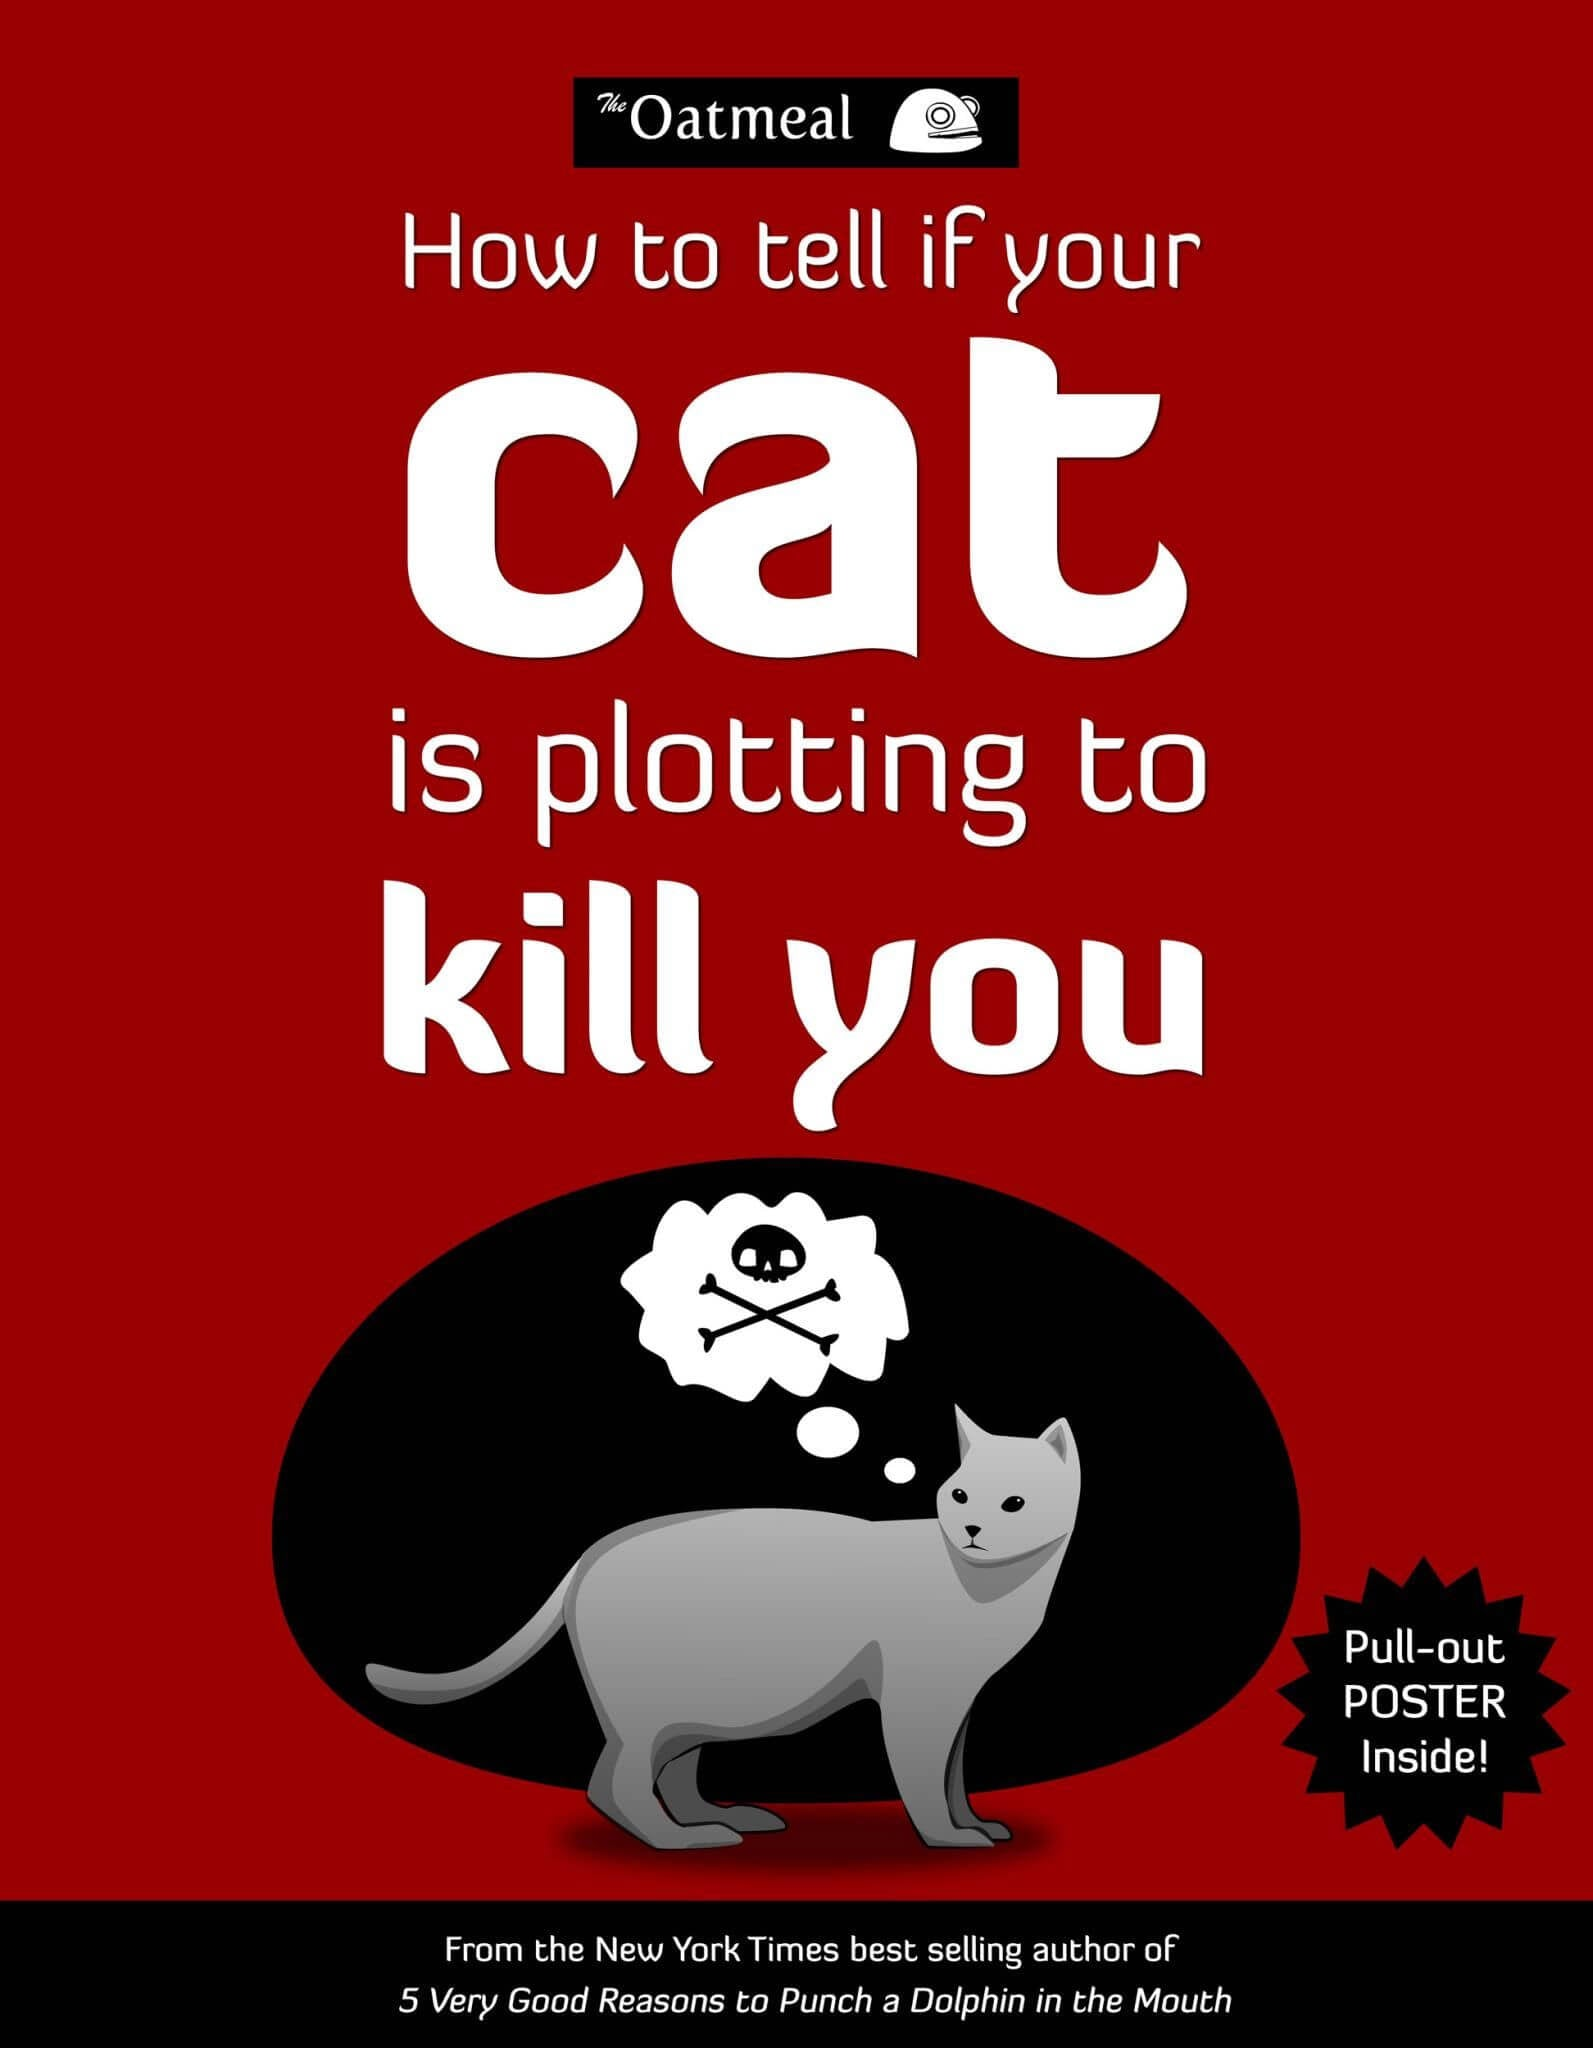 How to Tell if Your Cat is Plotting to Kill You Paperback Book